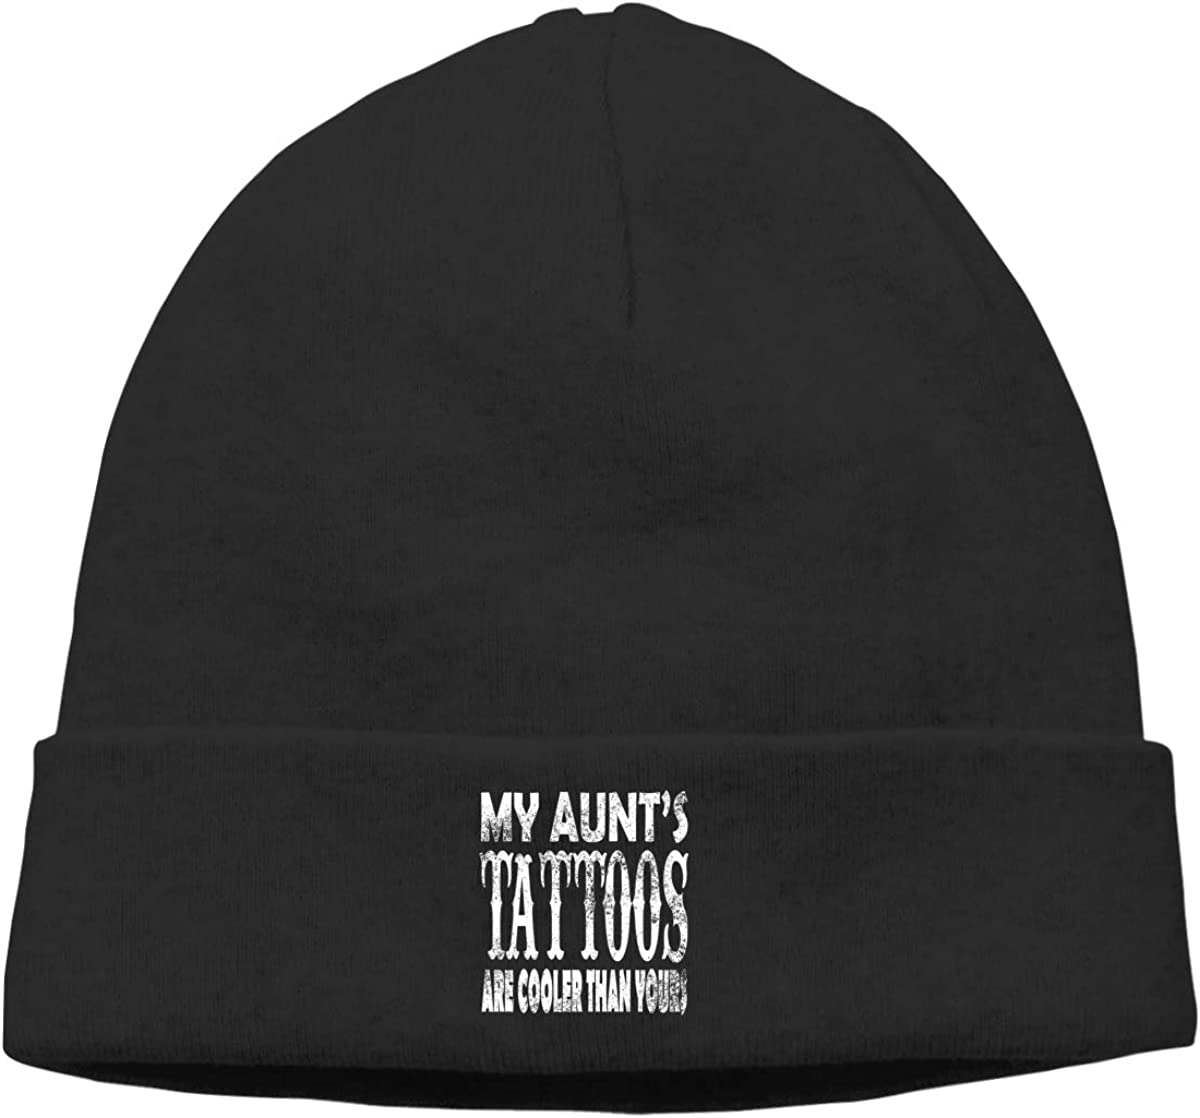 My Aunts Tattoos are Cooler Than Yours Knit Skull Caps for Mens Black